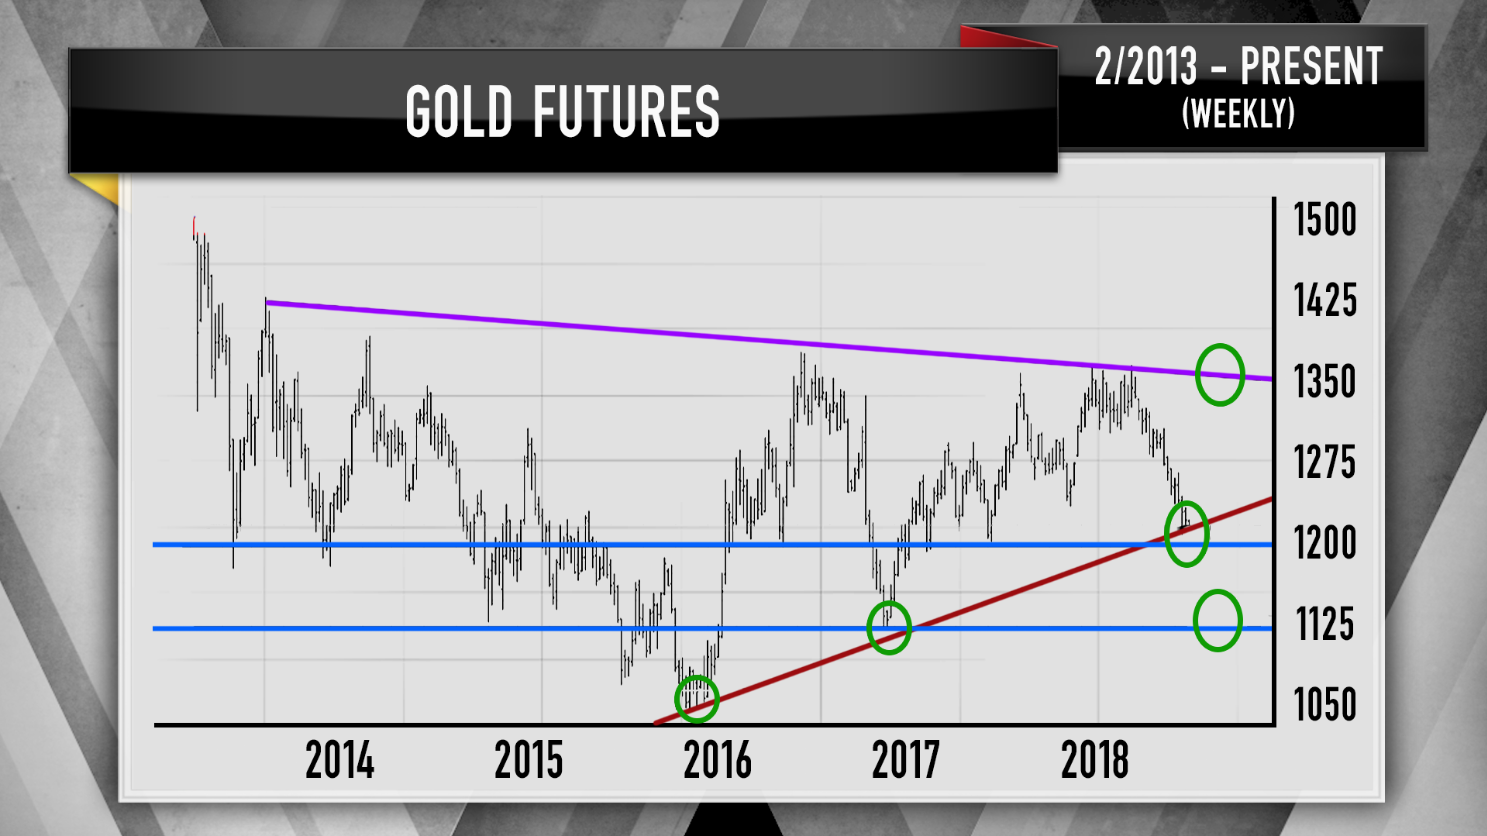 Cramers Charts Suggest Gold Could Be Nearing A Bottom